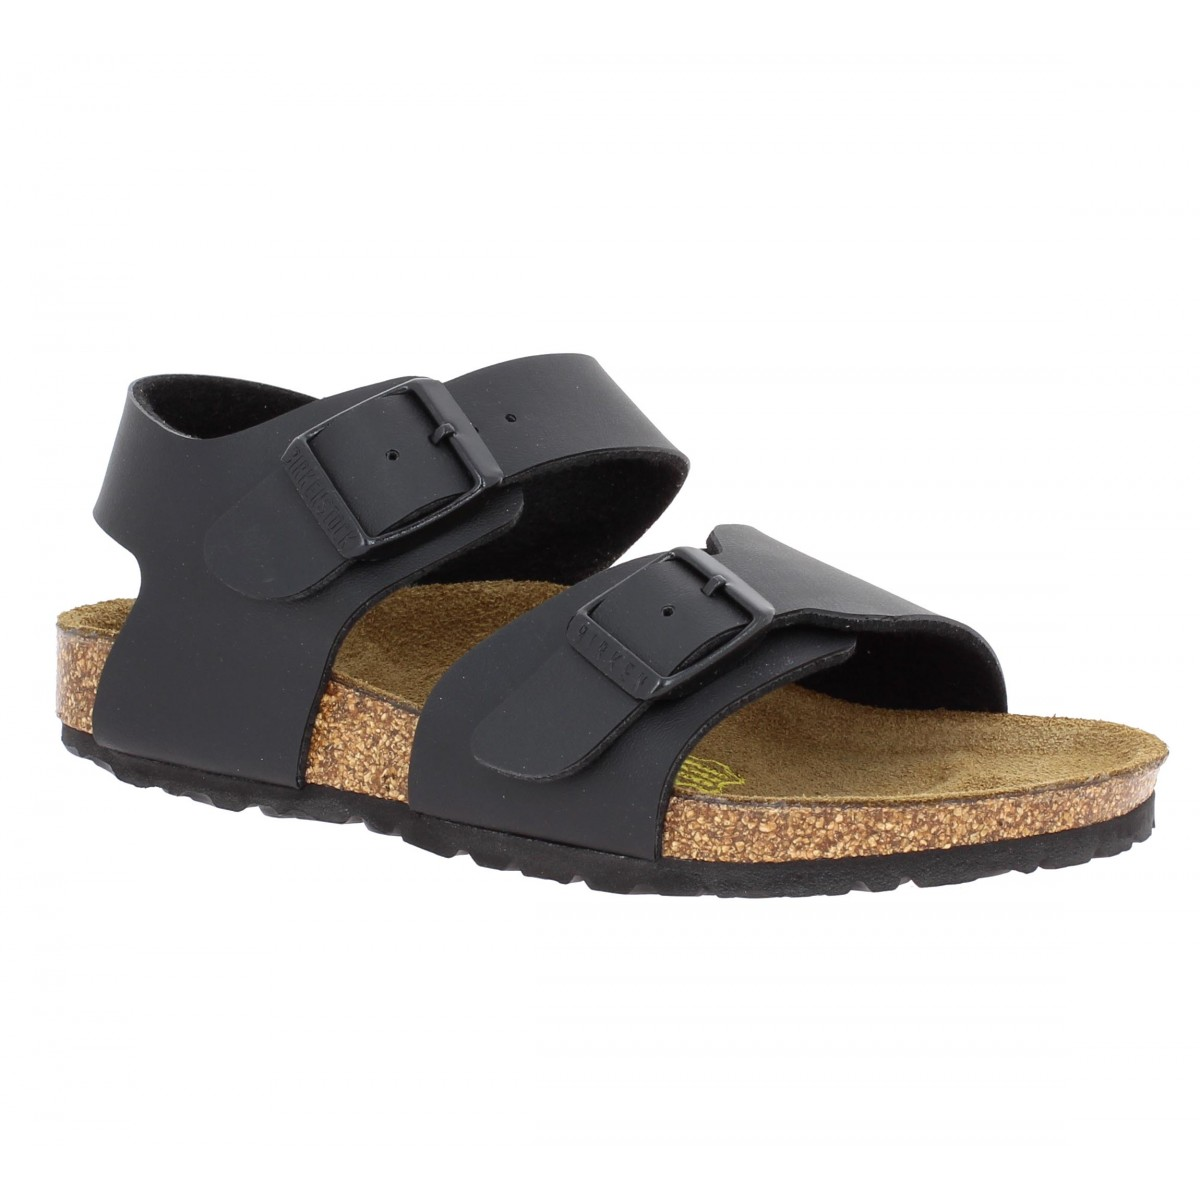 https://www.fanny-chaussures.com/blog/wp-content/uploads/birkenstock-new-york-enfant-noir-1_1.jpg